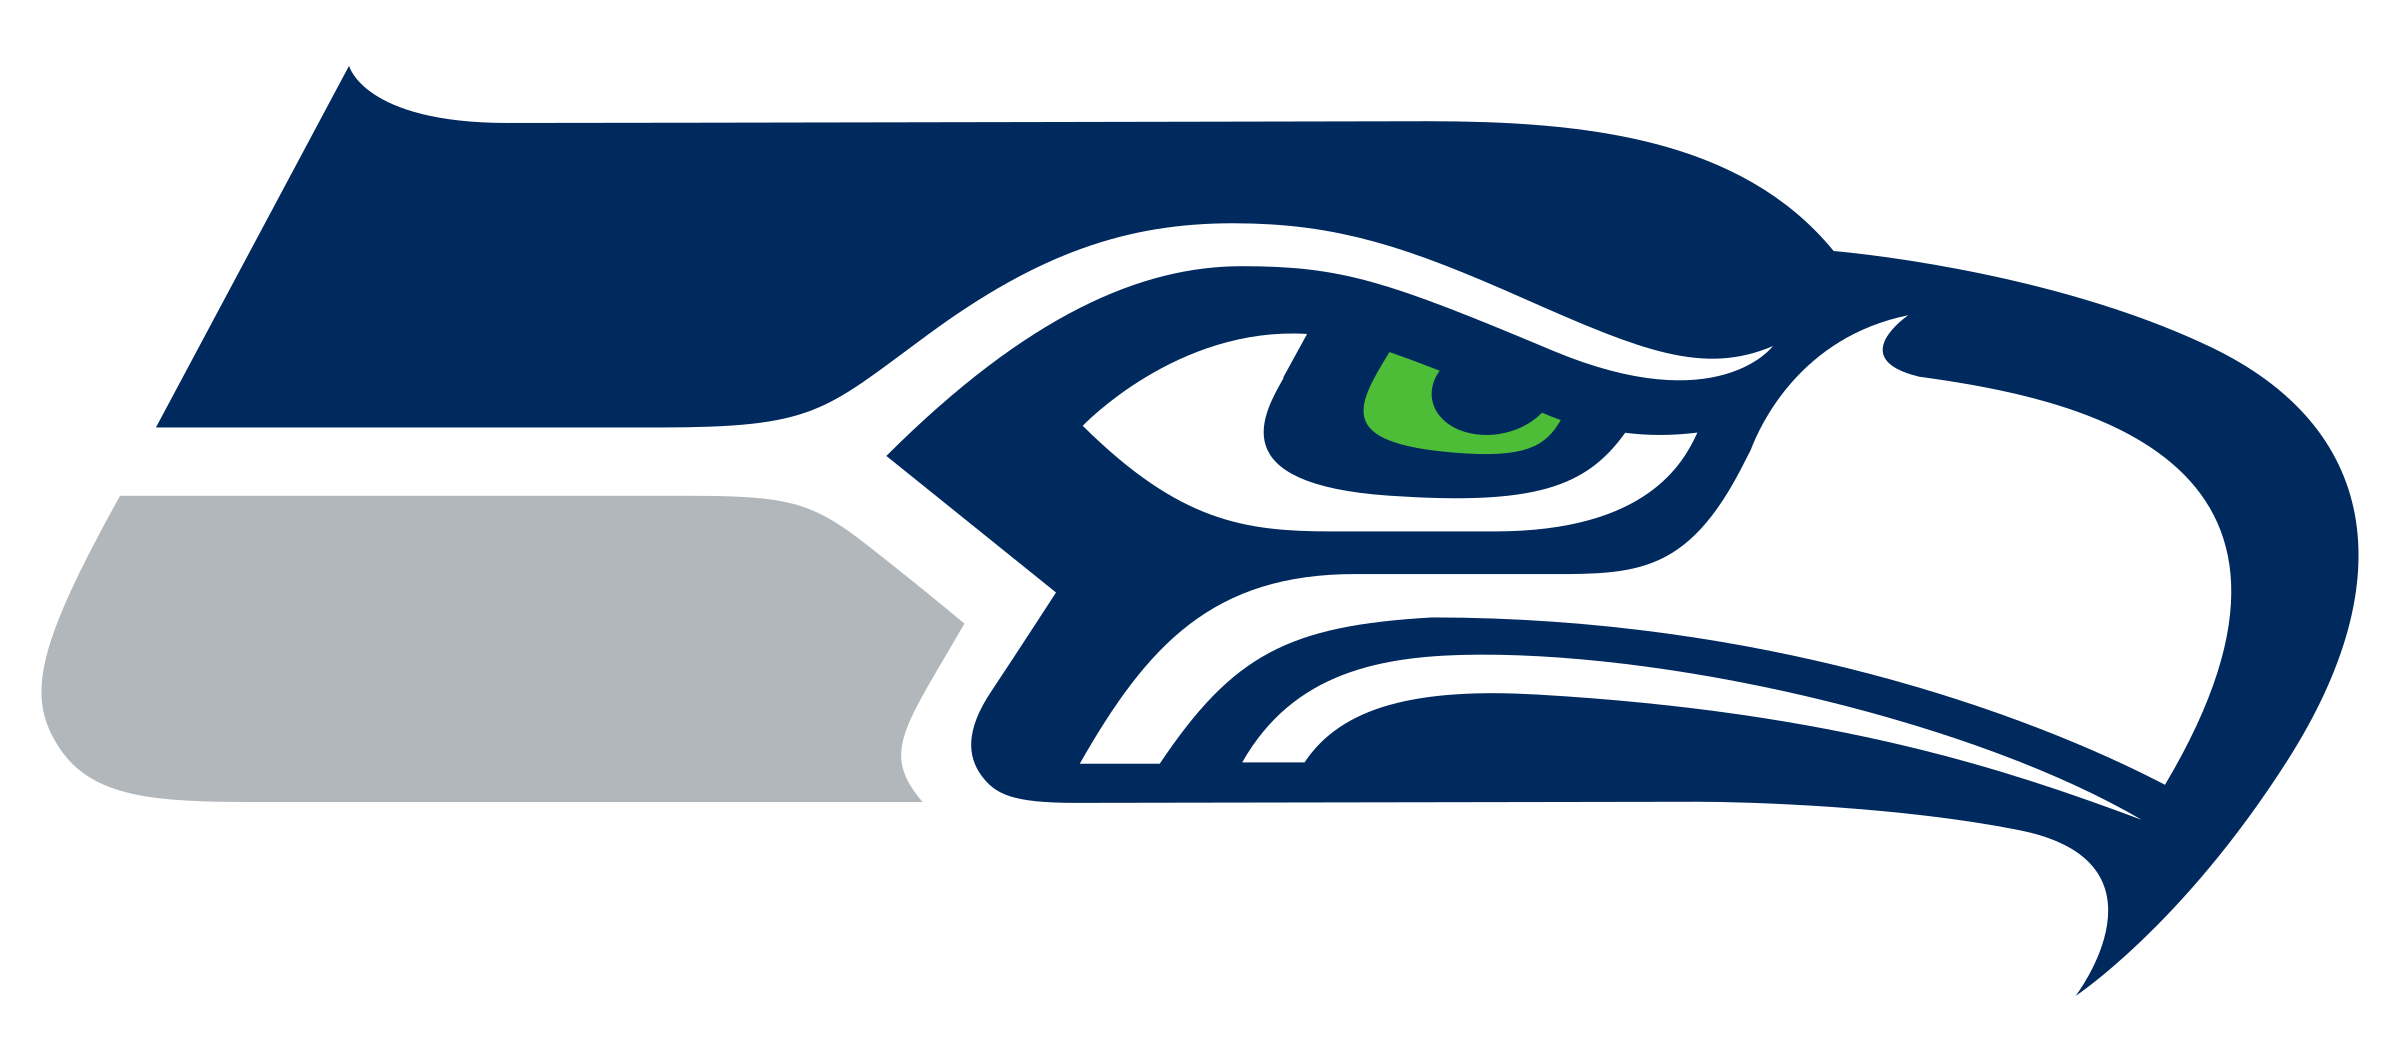 Seahawks logo png. Transparent svg vector freebie